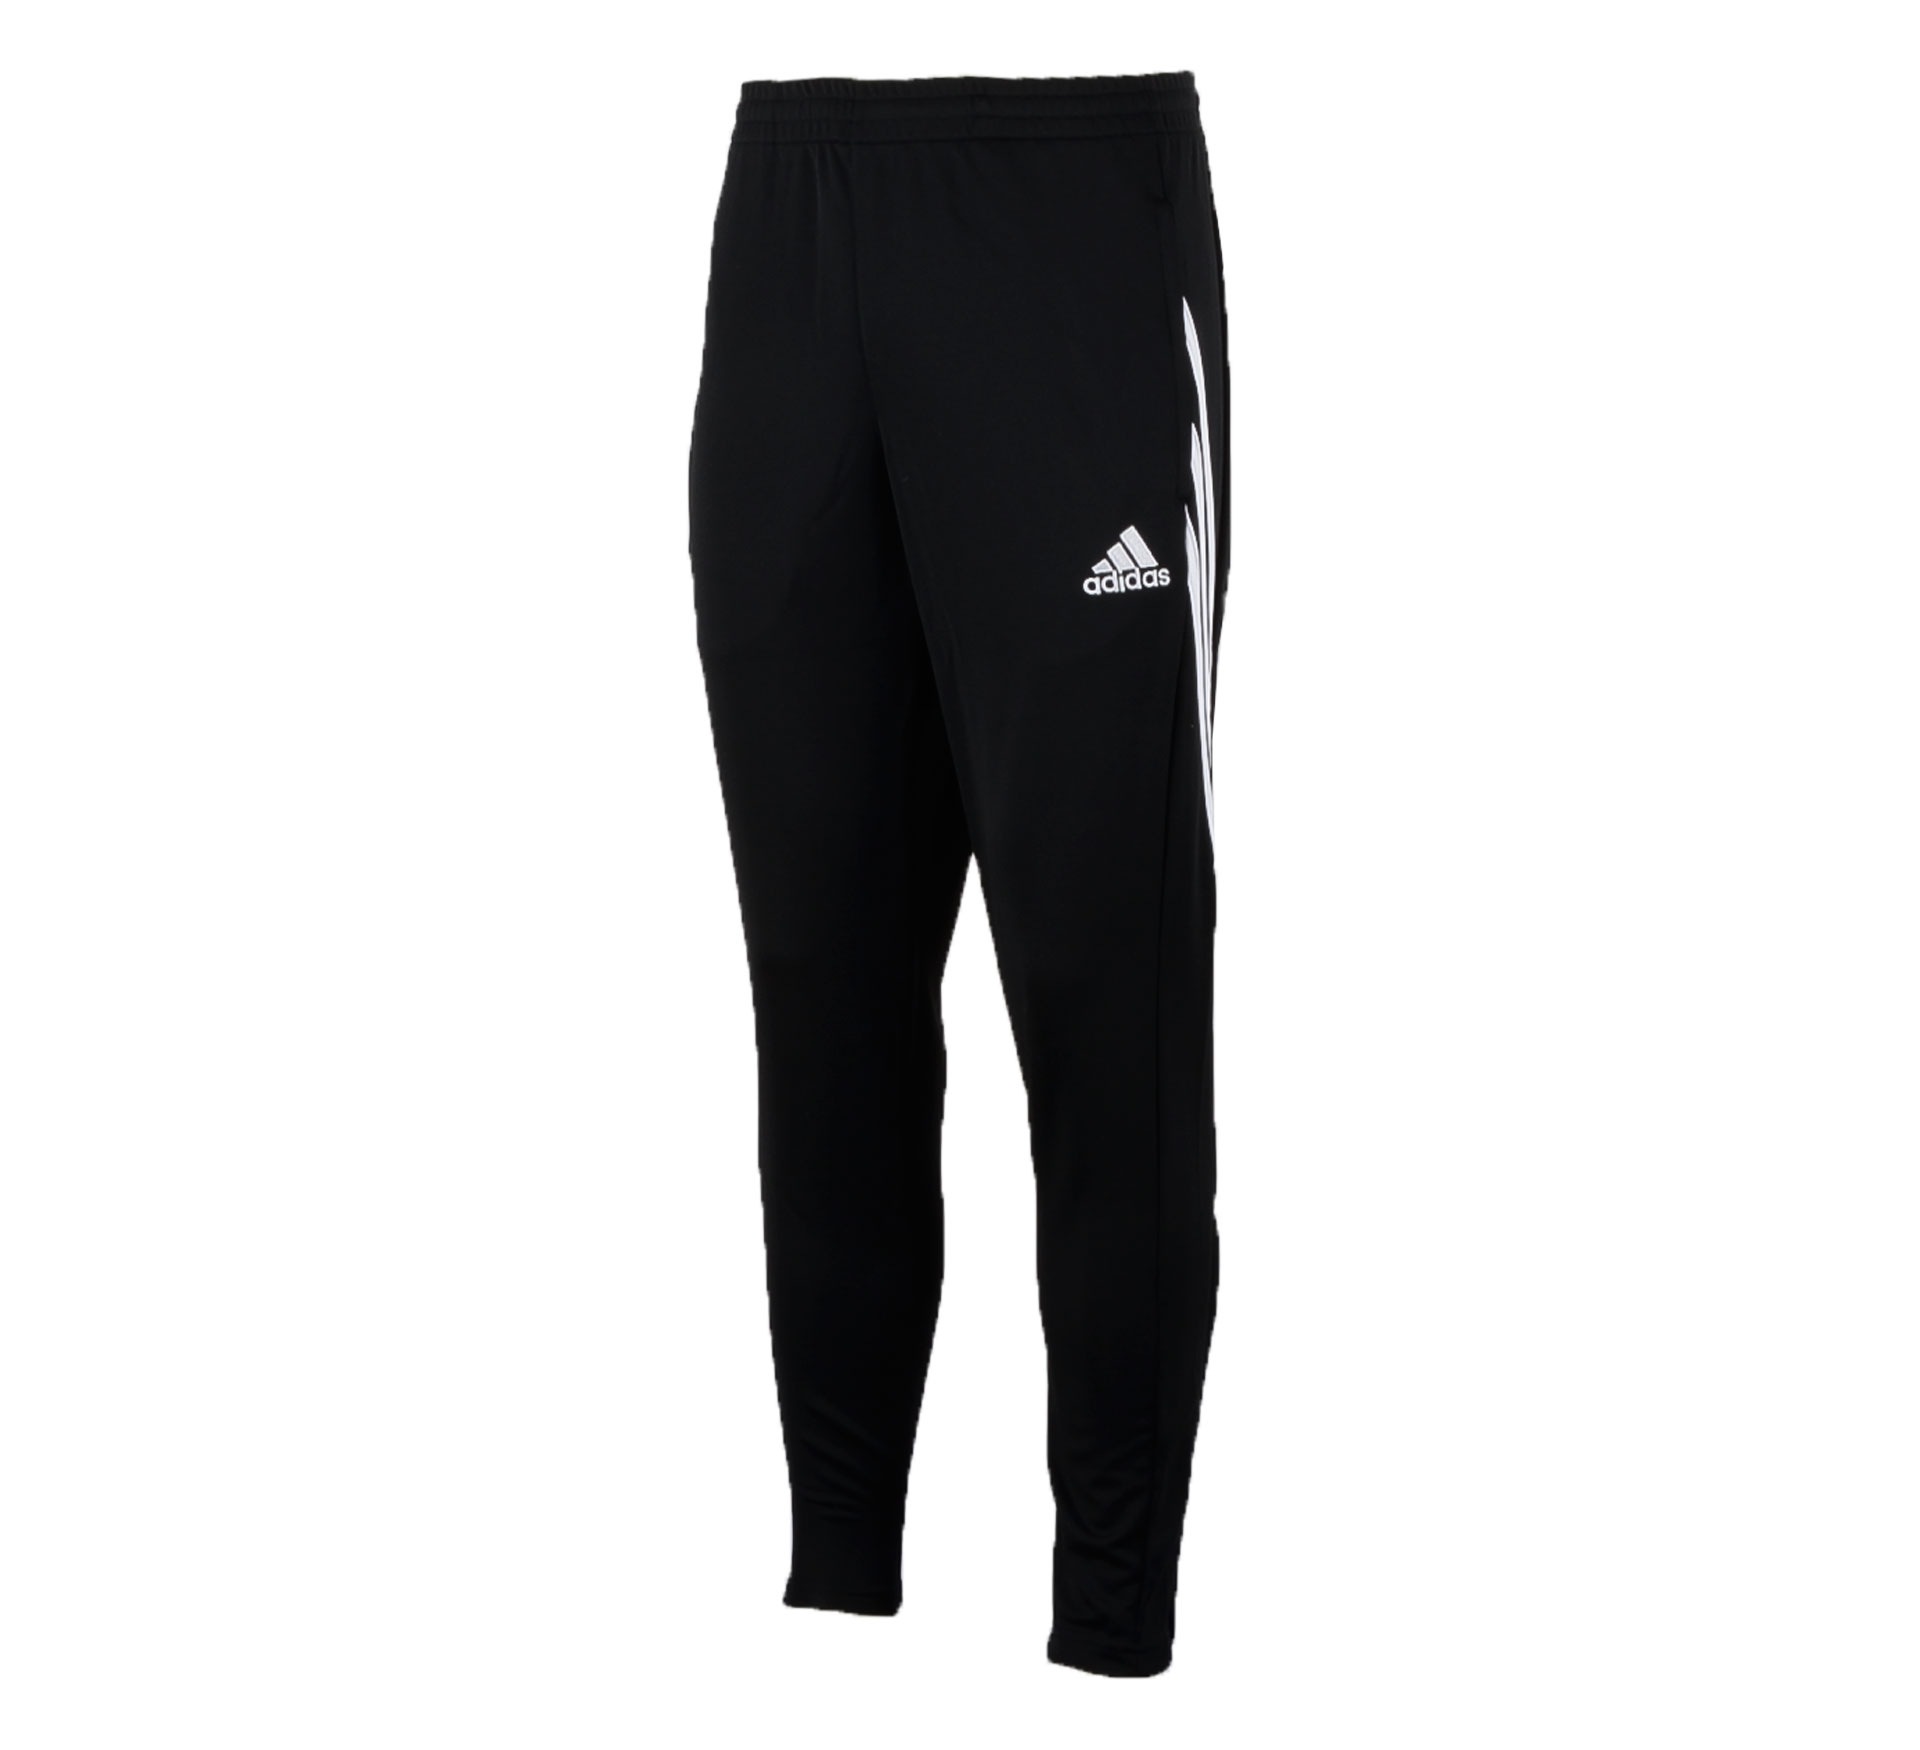 Adidas  Sereno 14 Trainingsbroek Heren zwart - wit